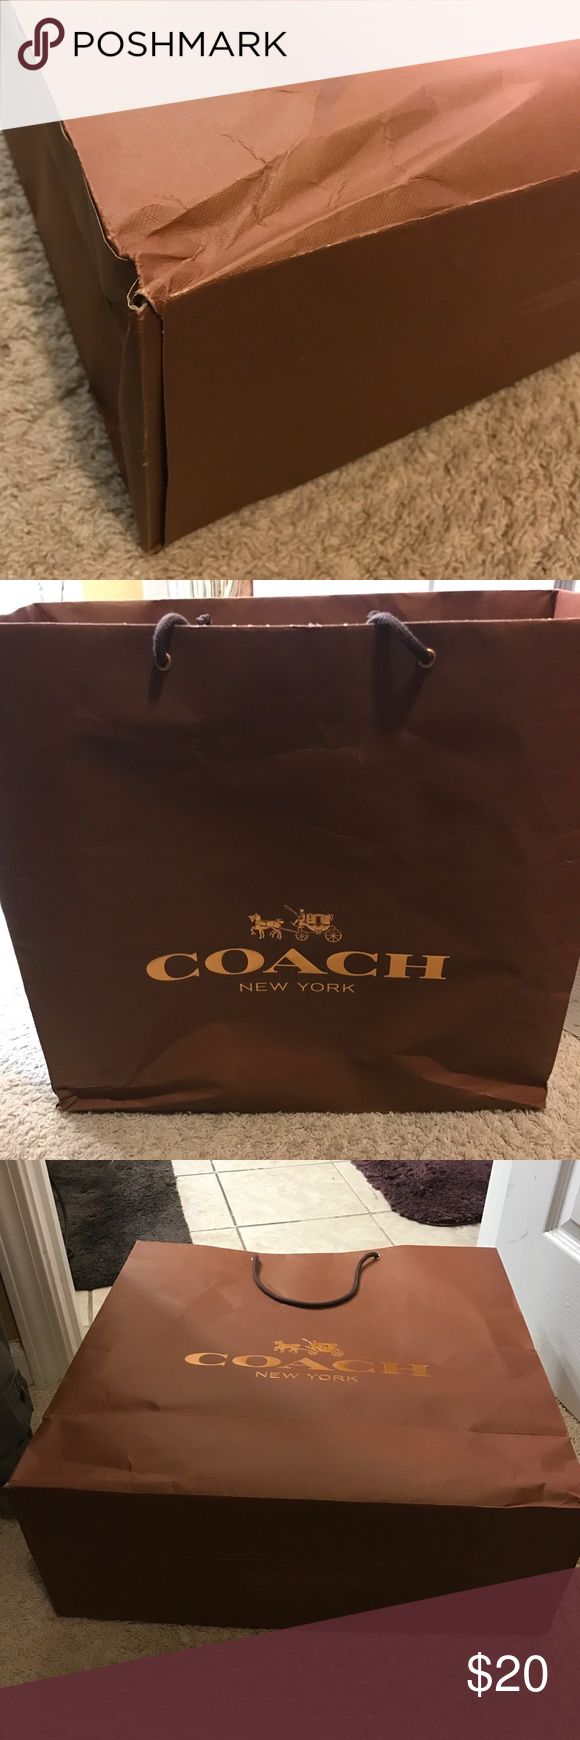 Coach huge bag Plz chk all pictures before I ship Other